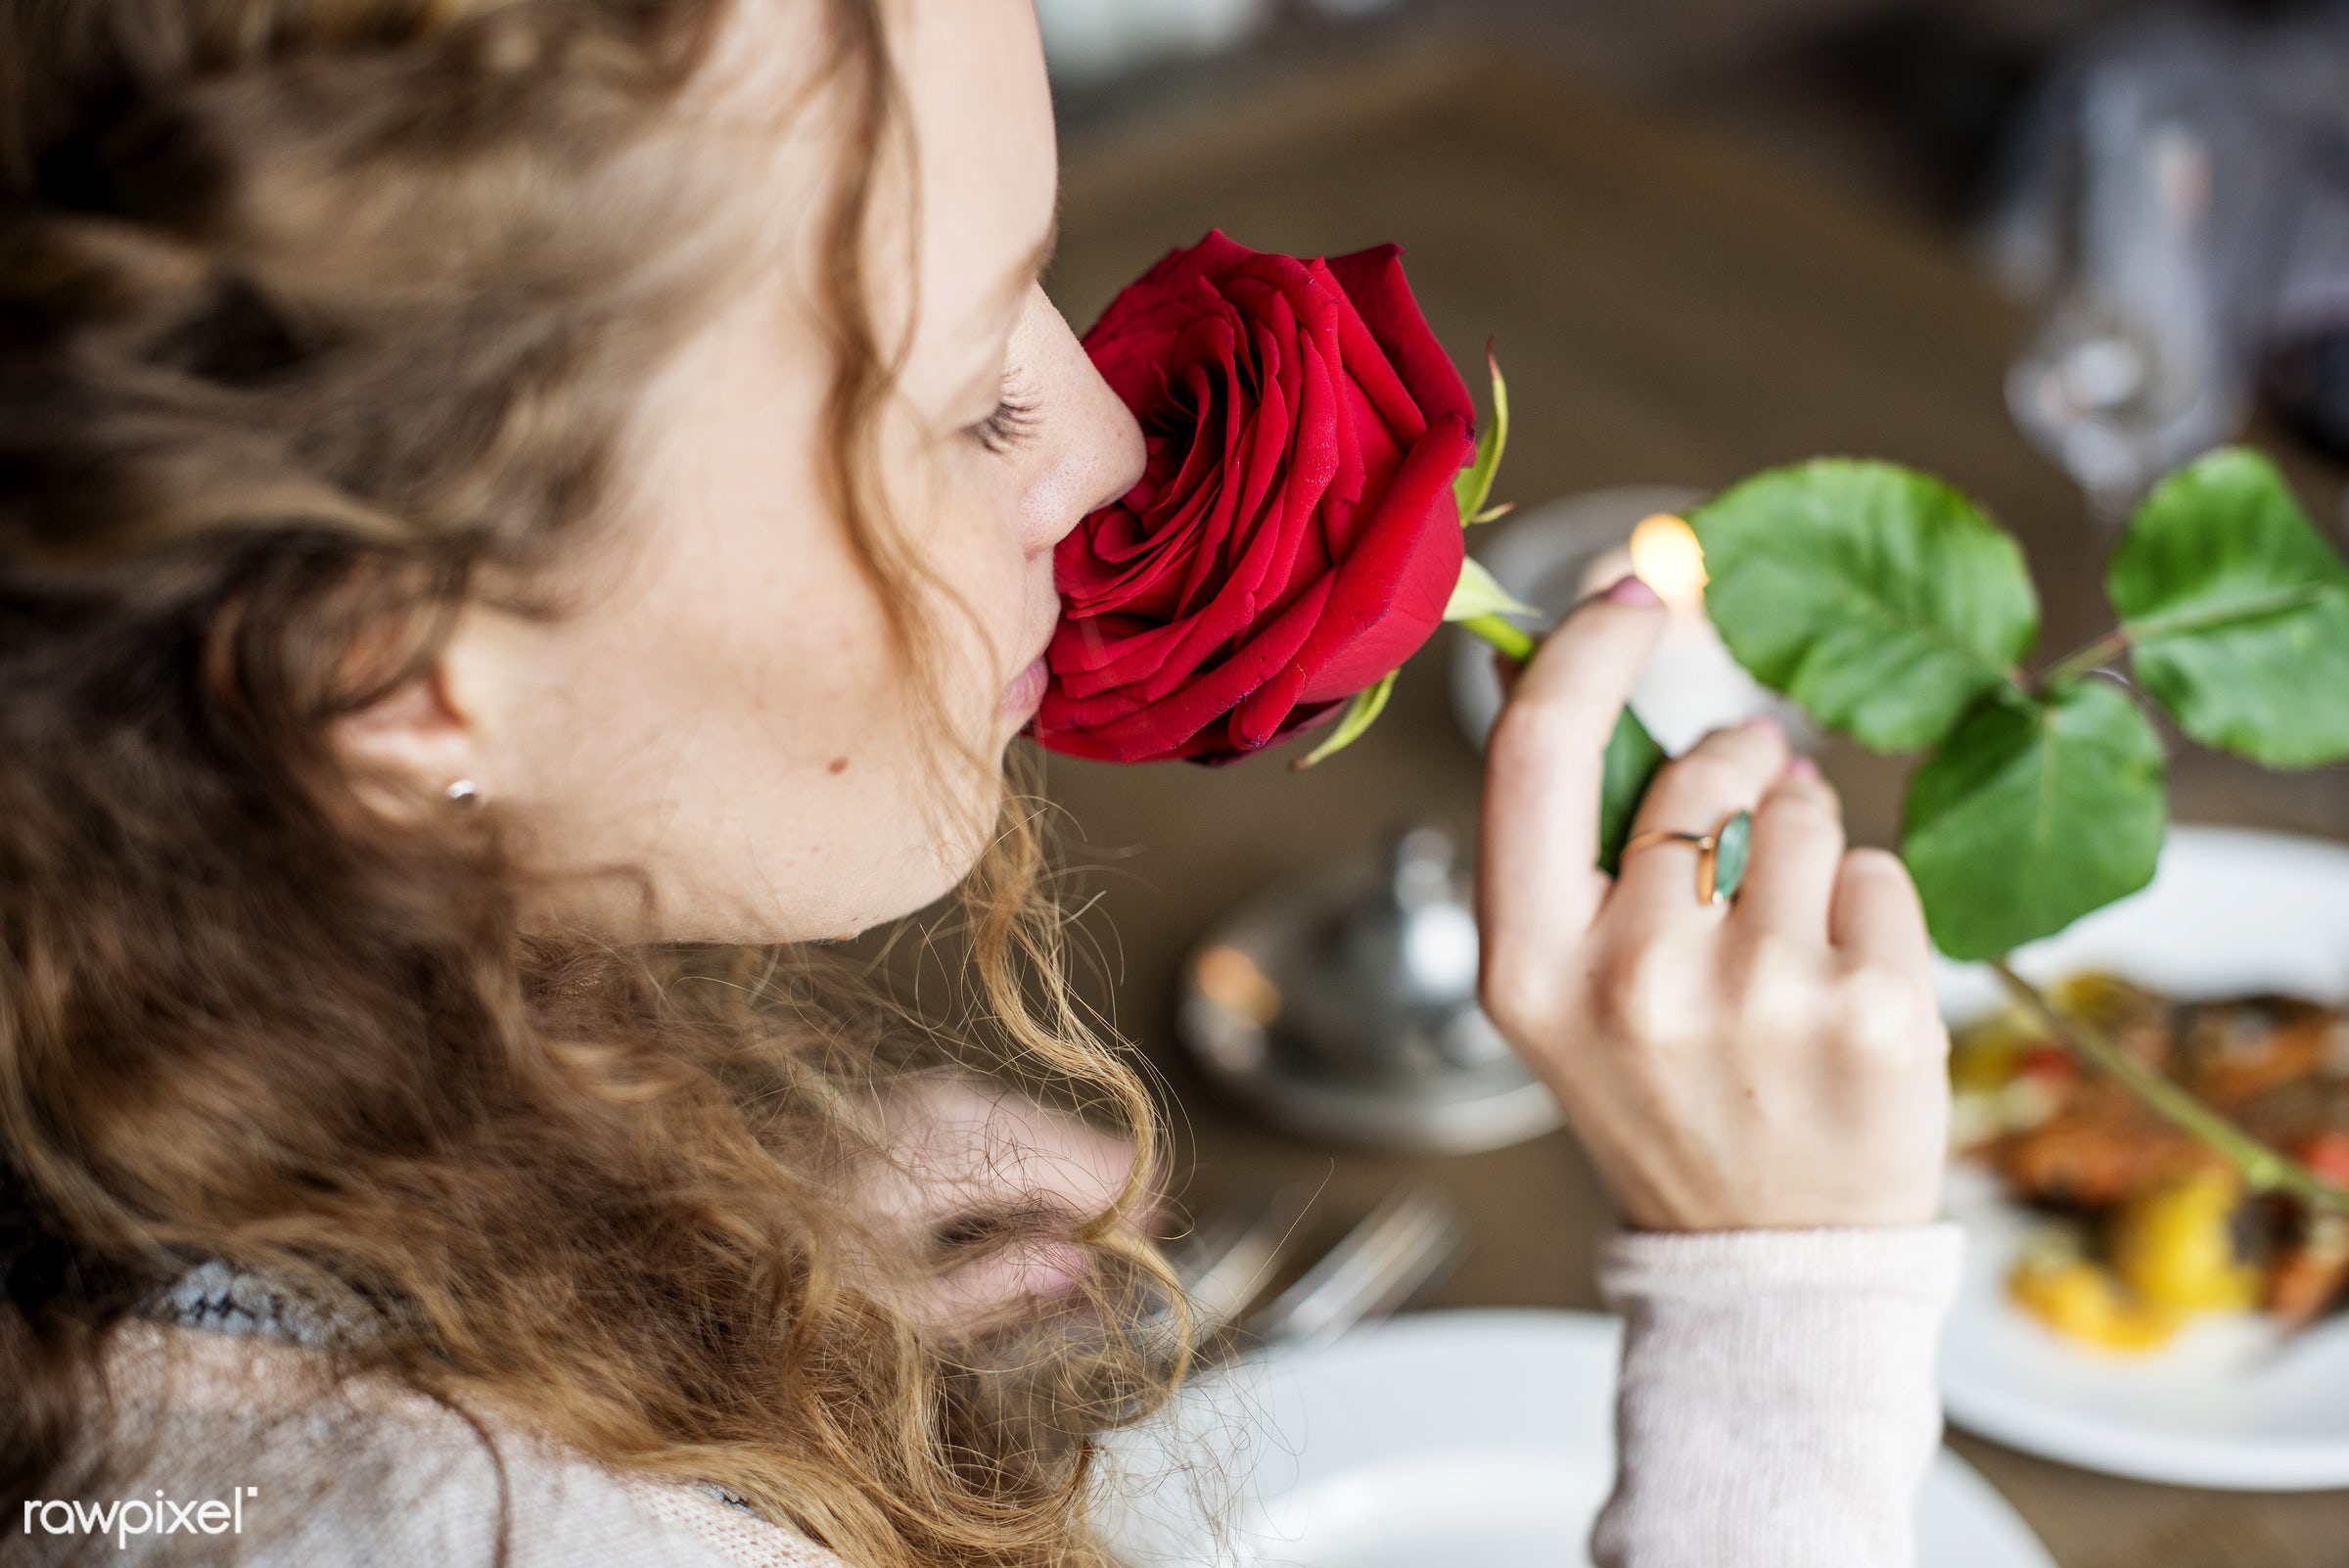 calm, smell, holding, smelling, pretty, girl, fresh, woman, refresh, flower, peaceful, refreshment, rose, female, peace,...